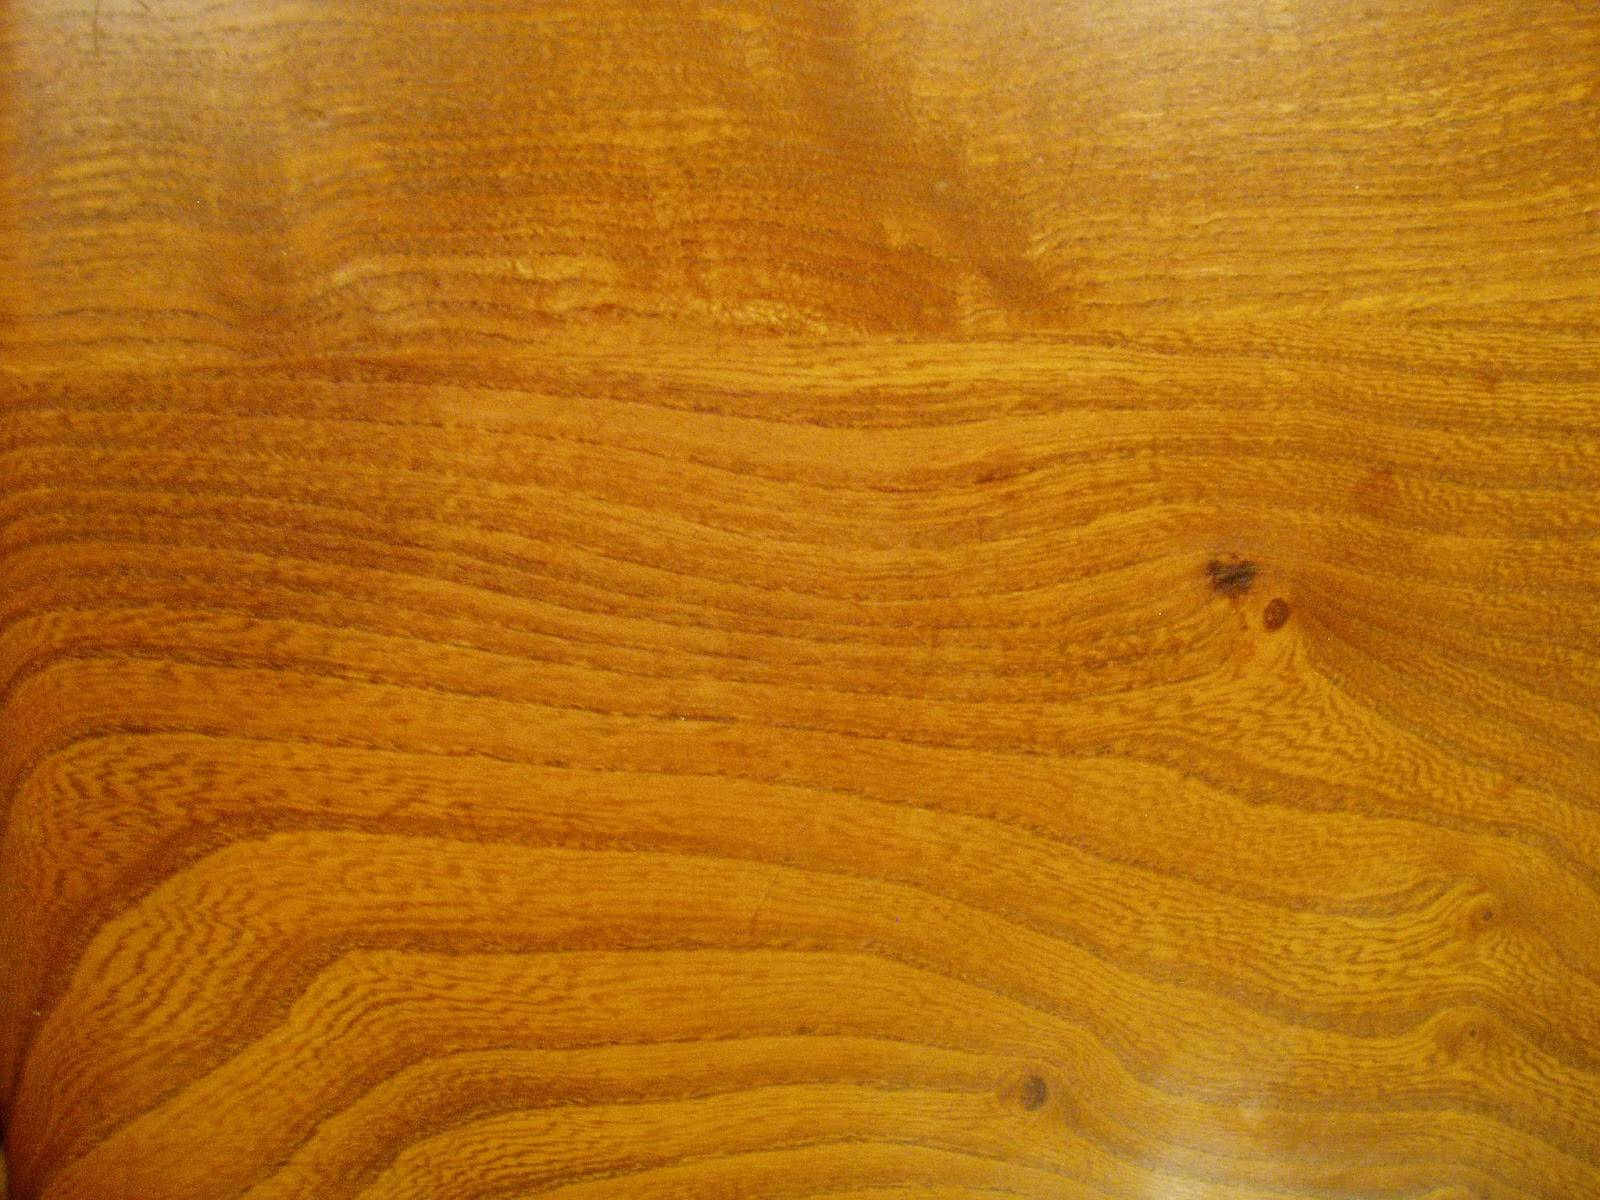 Thrifty Household Scratched Dented Watermarked Wood